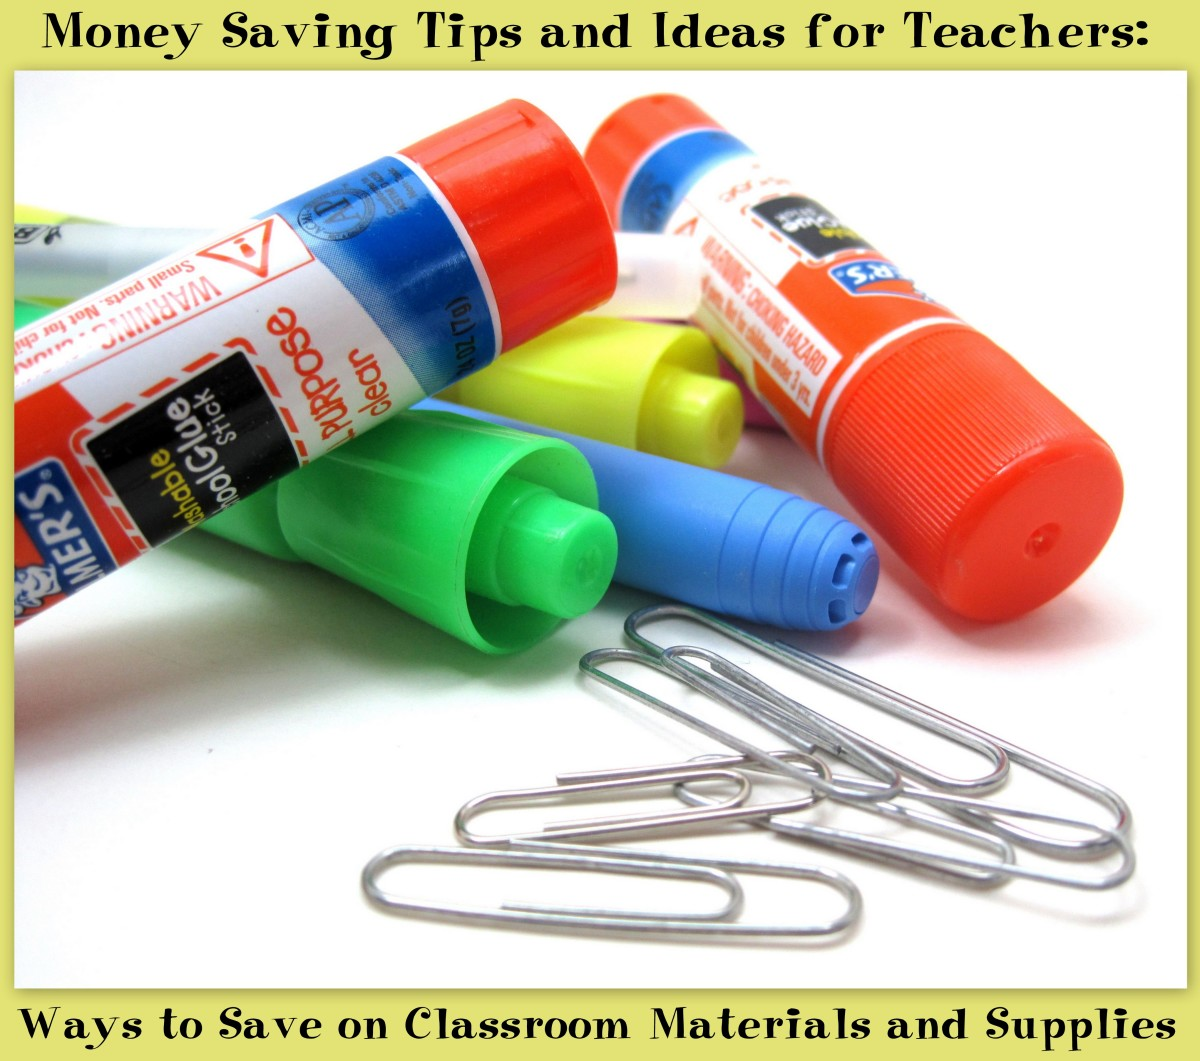 Money Saving Tips and Ideas for Teachers: Saving on Classroom Materials and Supplies